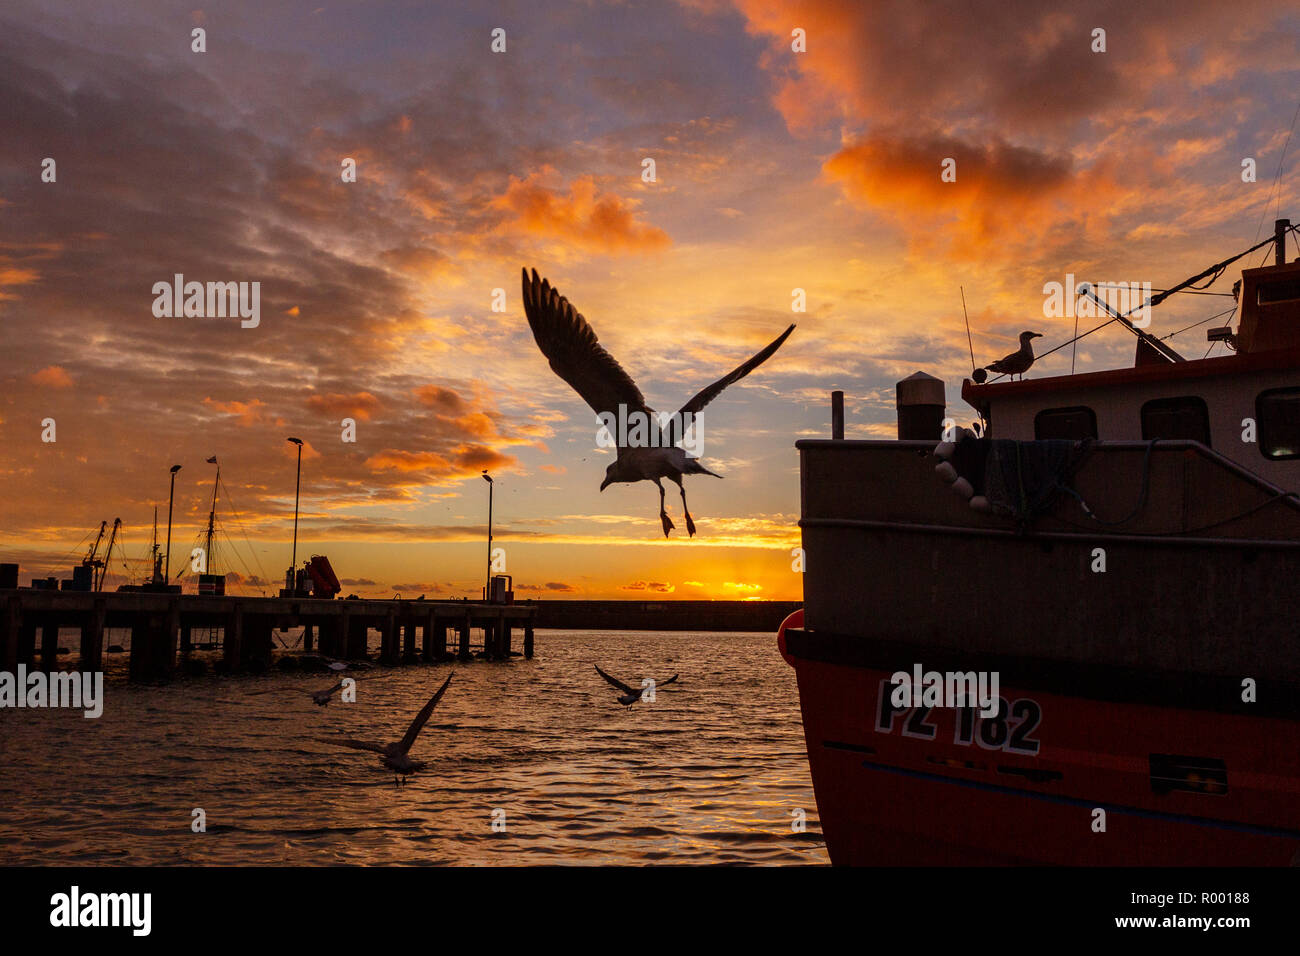 Newlyn, Cornwall, UK, 31st October 2018. Stunning red skies over the fishing port of Newlyn this morning. Credit: Mike Newman/Alamy Live News. - Stock Image